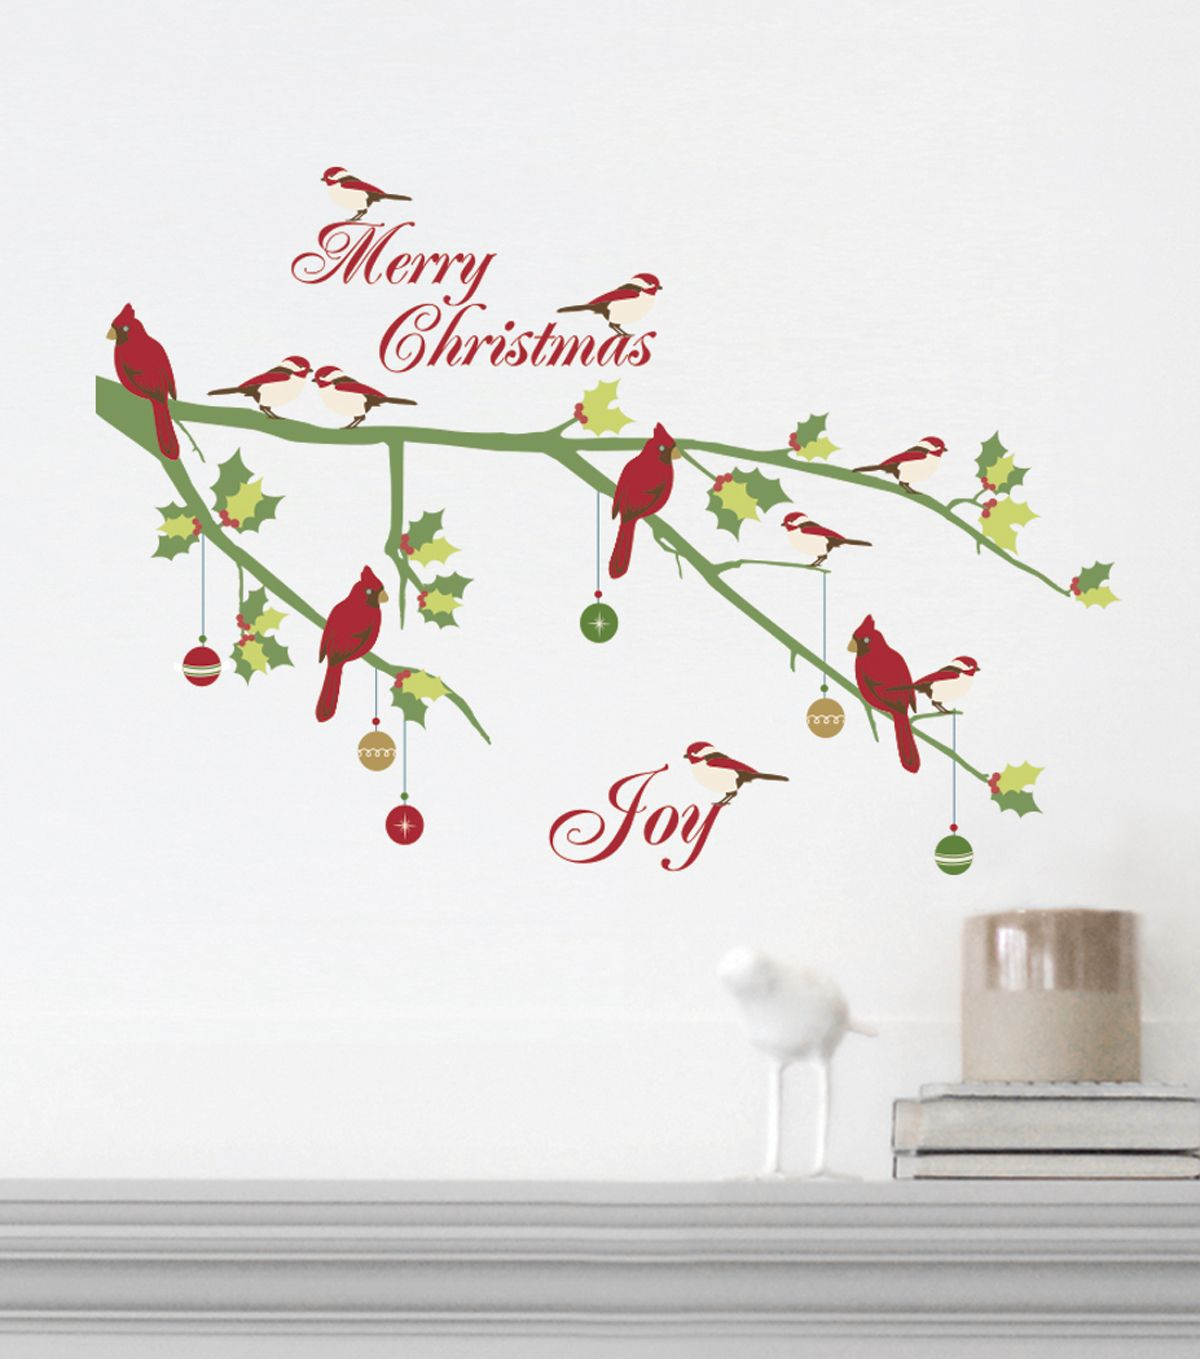 DCWV Home Christmas Wall Decal: Merry Christmas with Birds